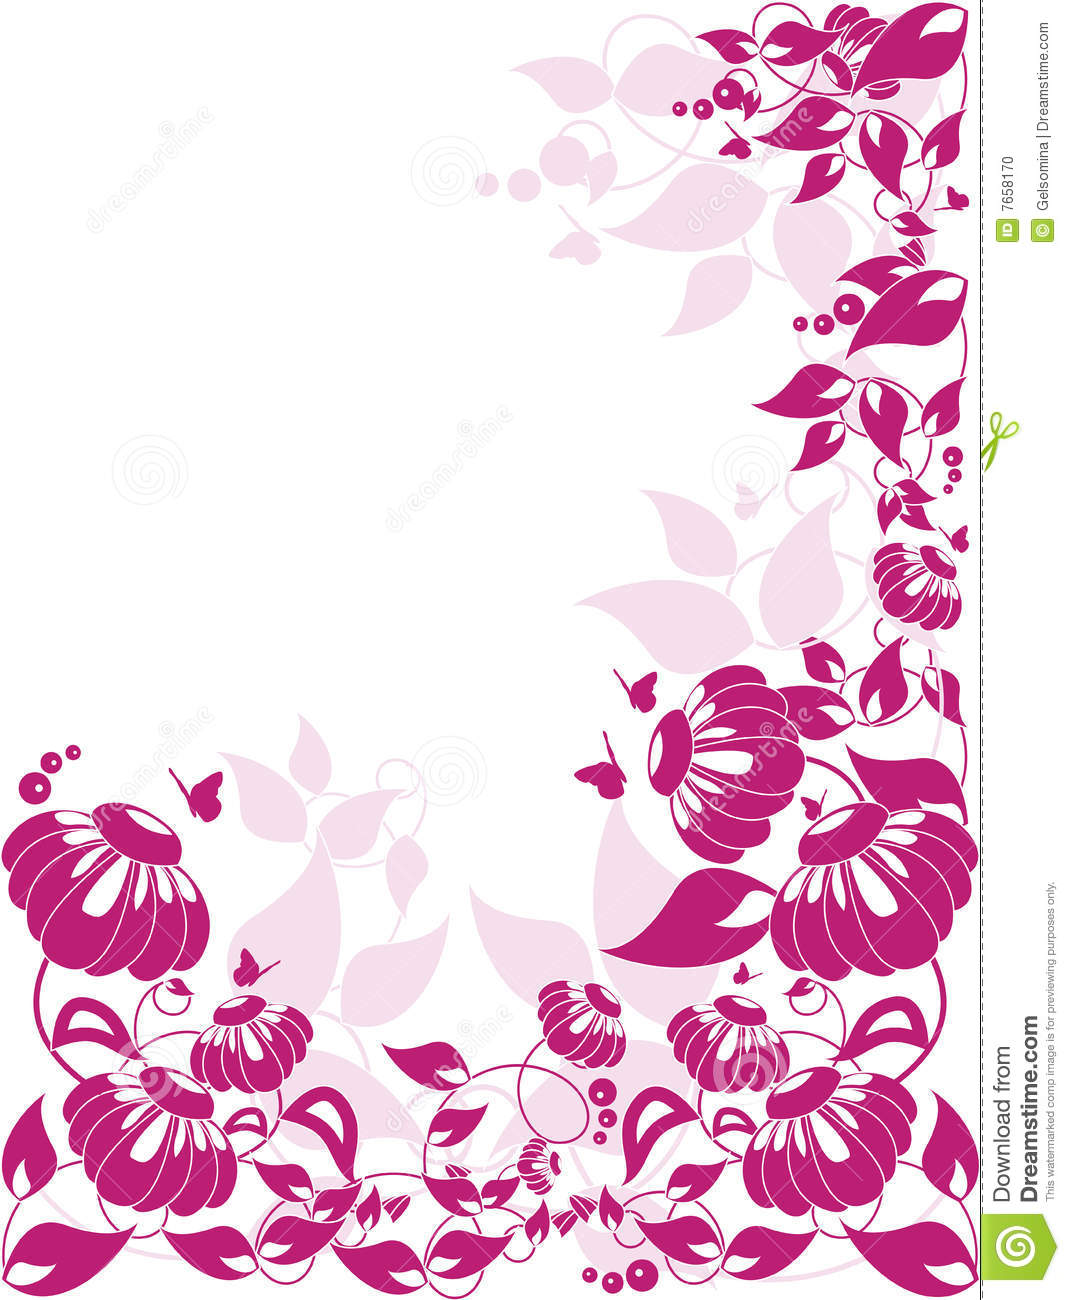 Vector floral border  eps included Vector Floral Border